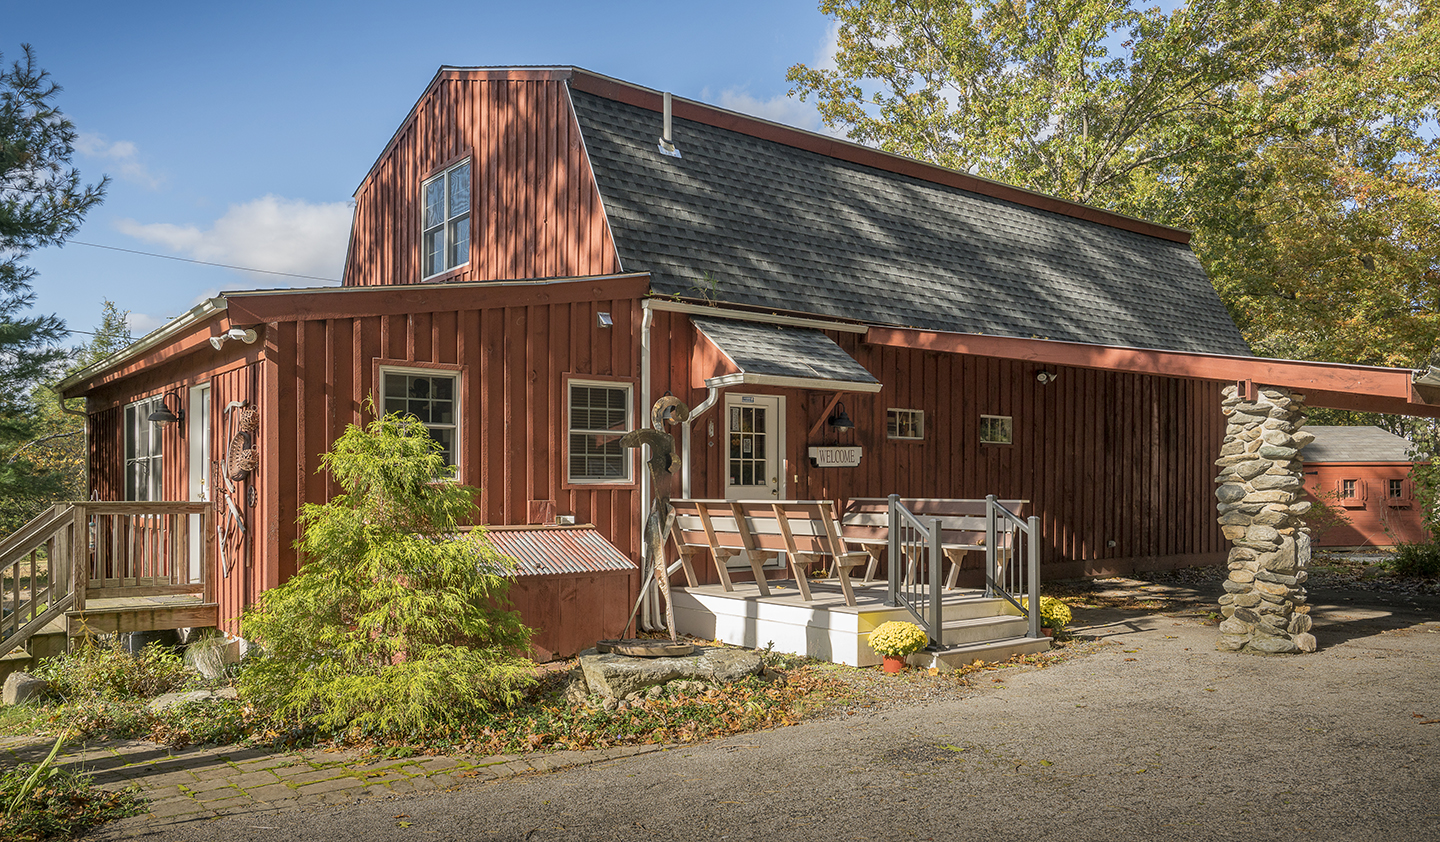 Complements Art Gallery Barn